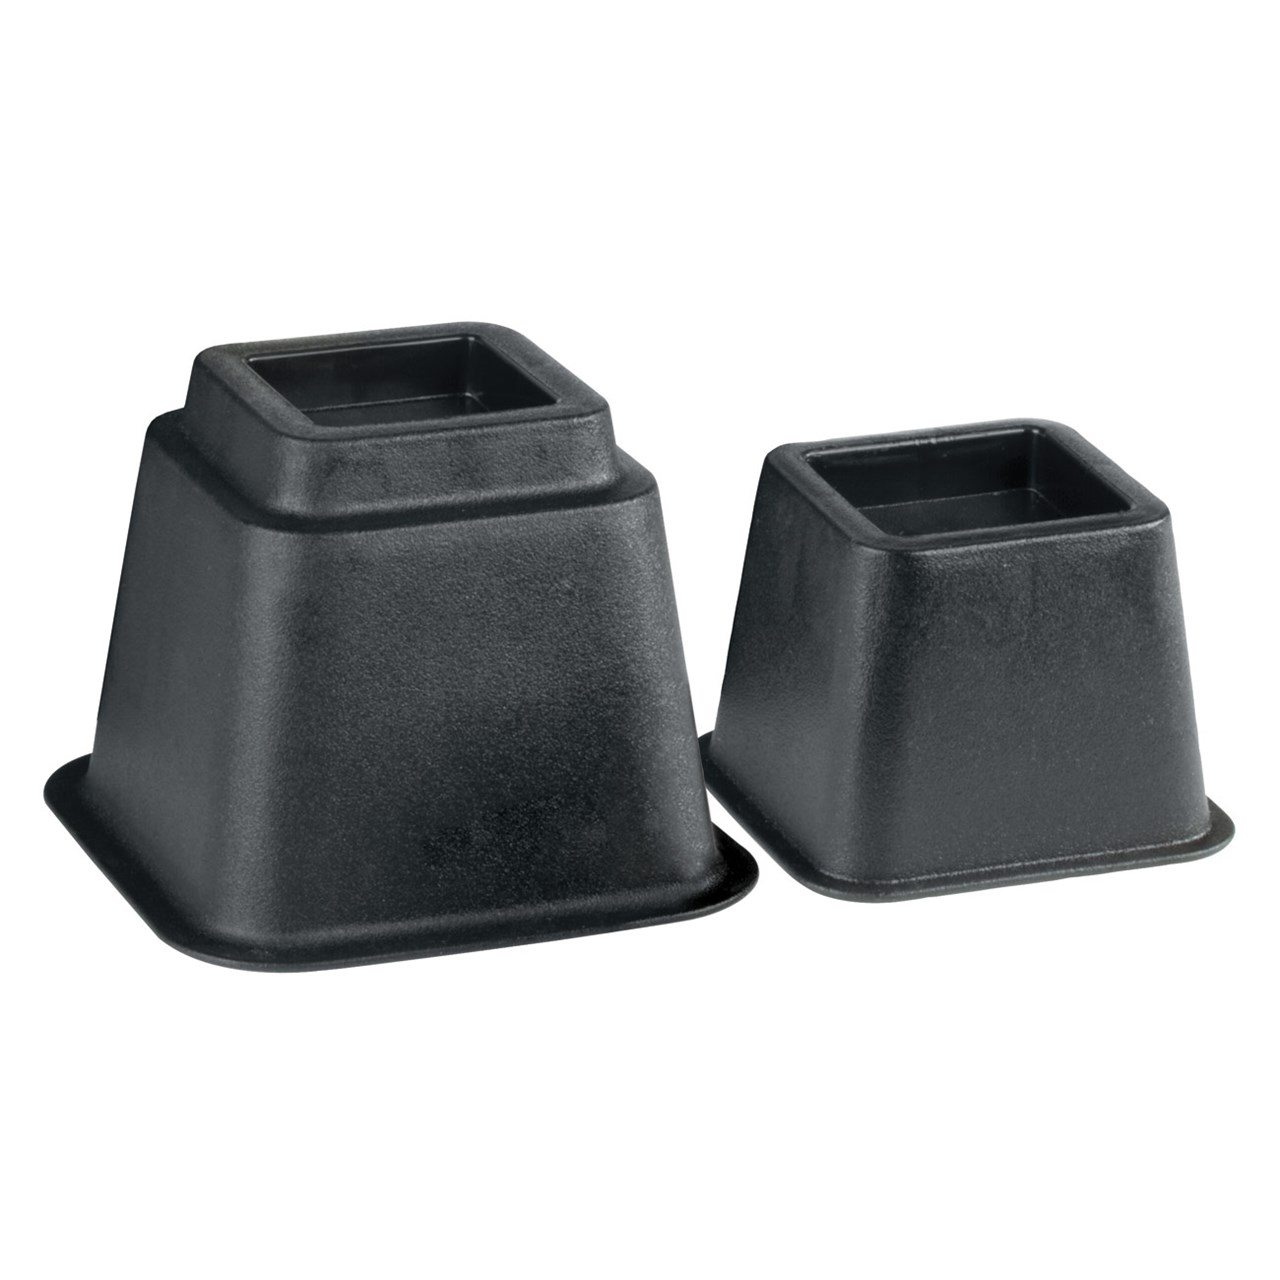 Bed Aids Bed And Chair Risers One Pair 6 Inch